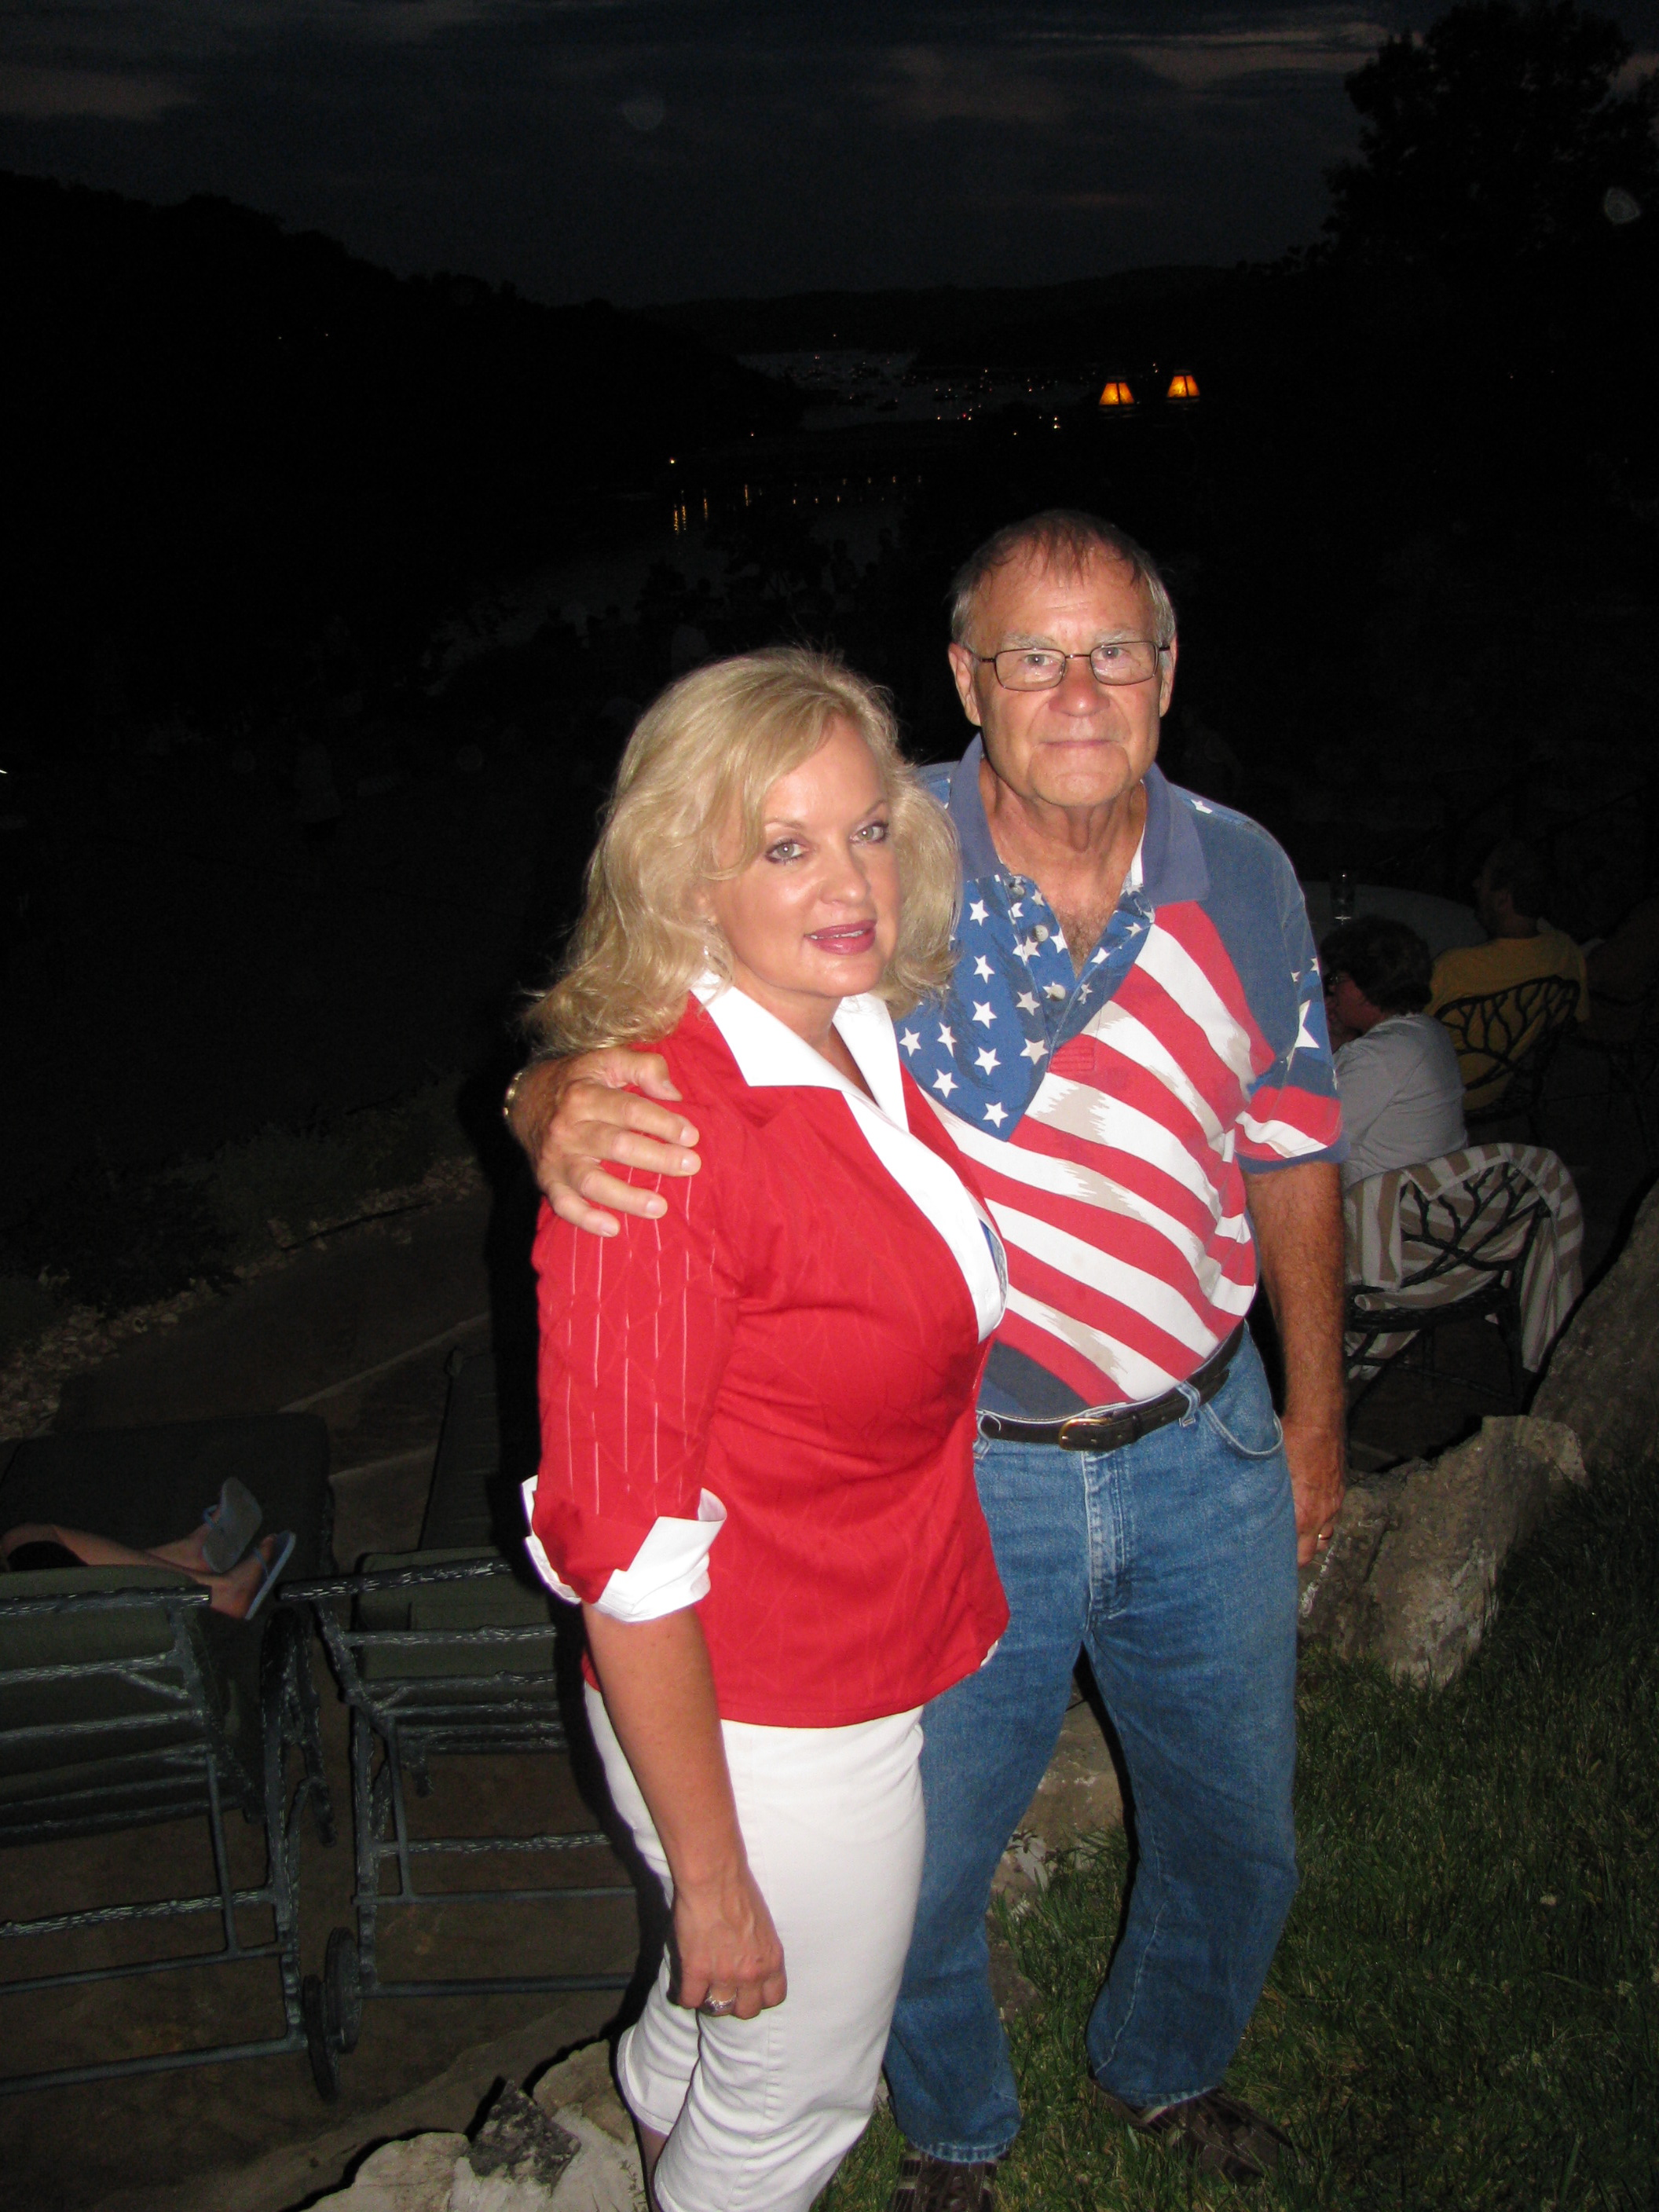 Jerry and Gail Independence Day 2010